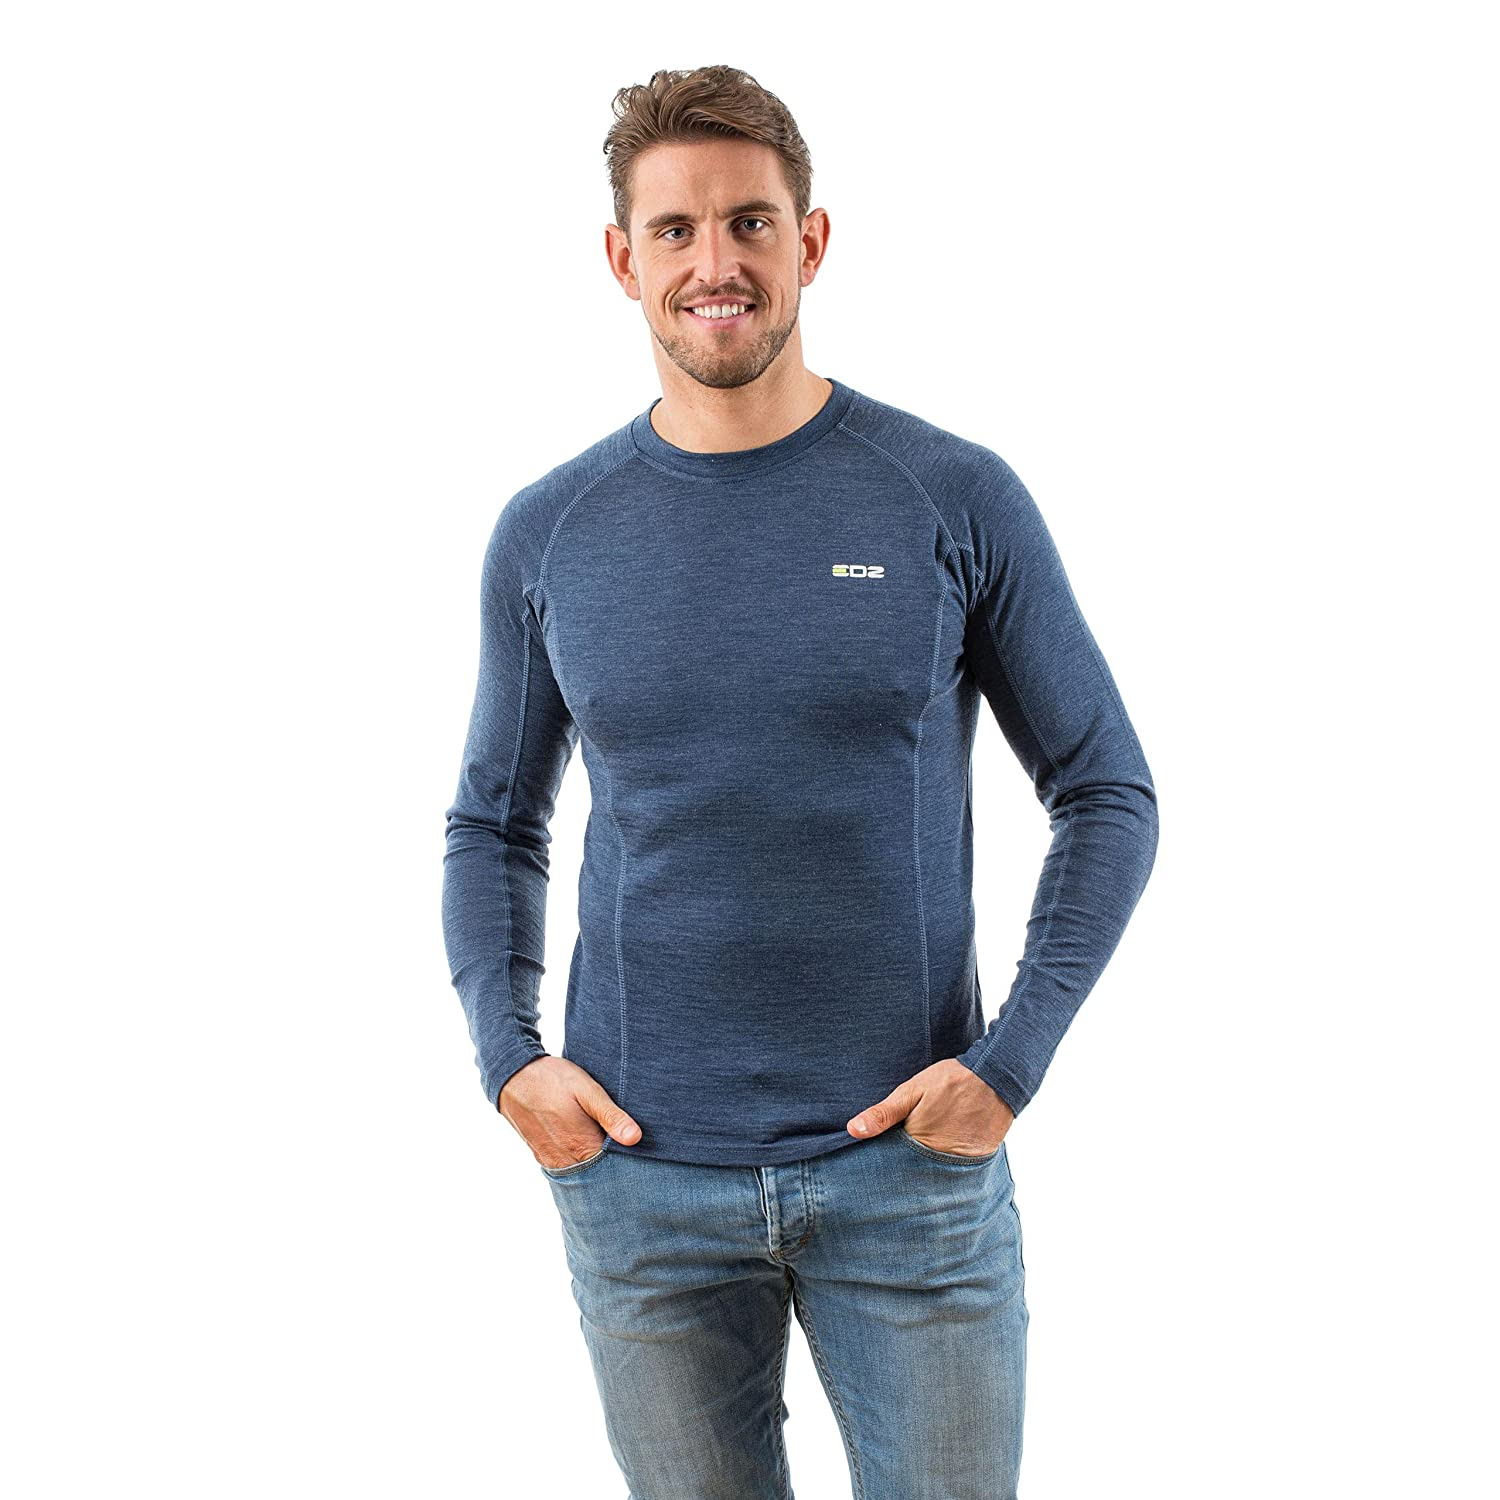 EDZ Men's Merino Wool Long Sleeve Base Layer Top